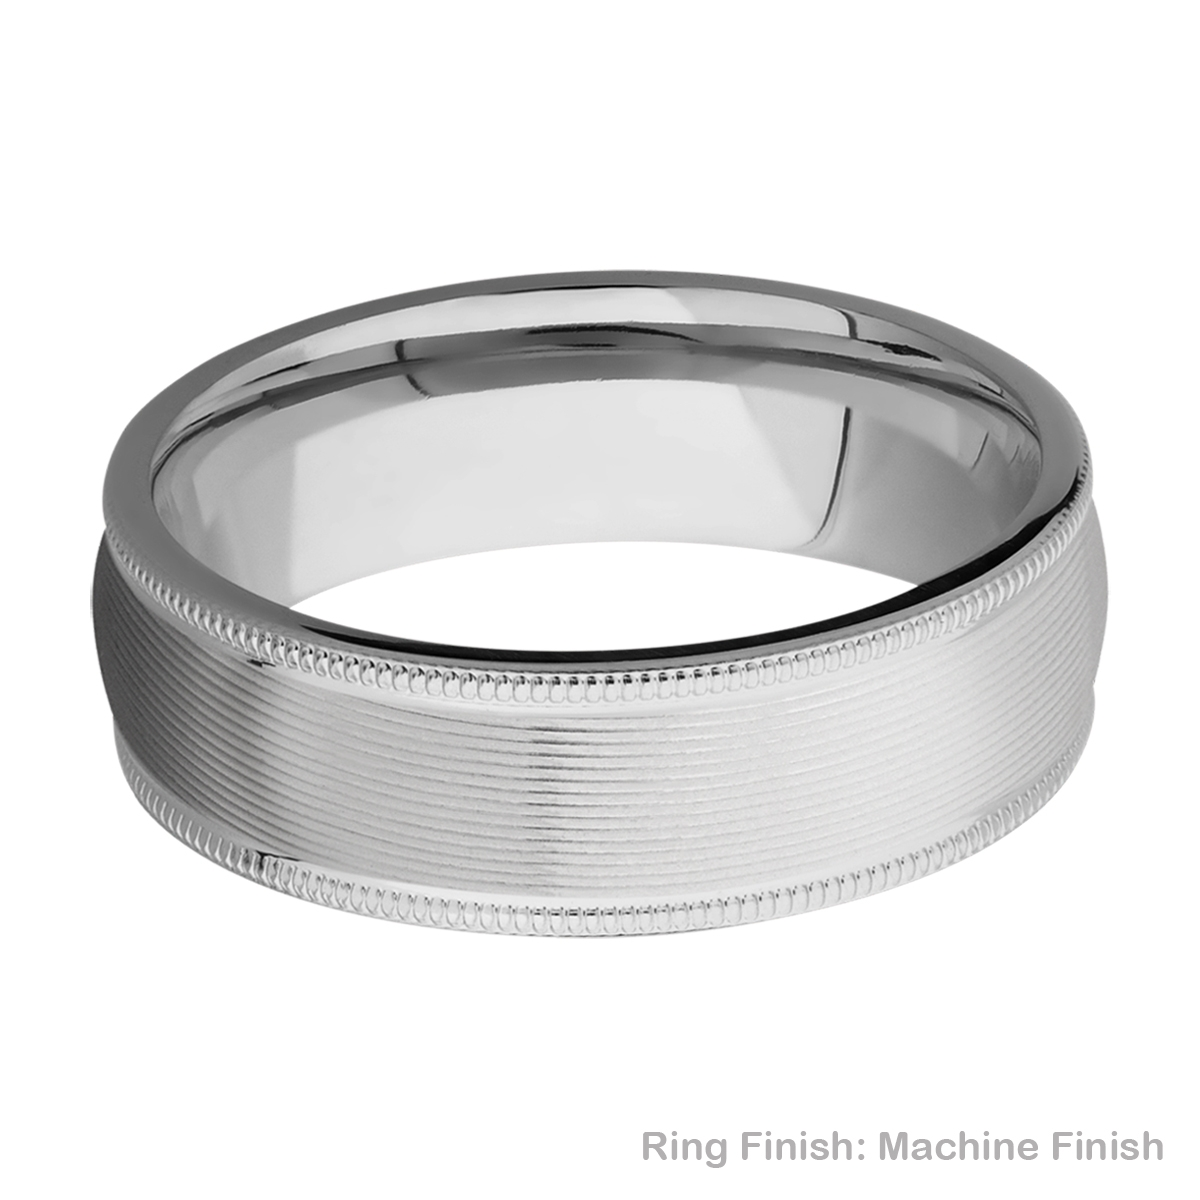 Lashbrook 7DMIL Titanium Wedding Ring or Band Alternative View 12